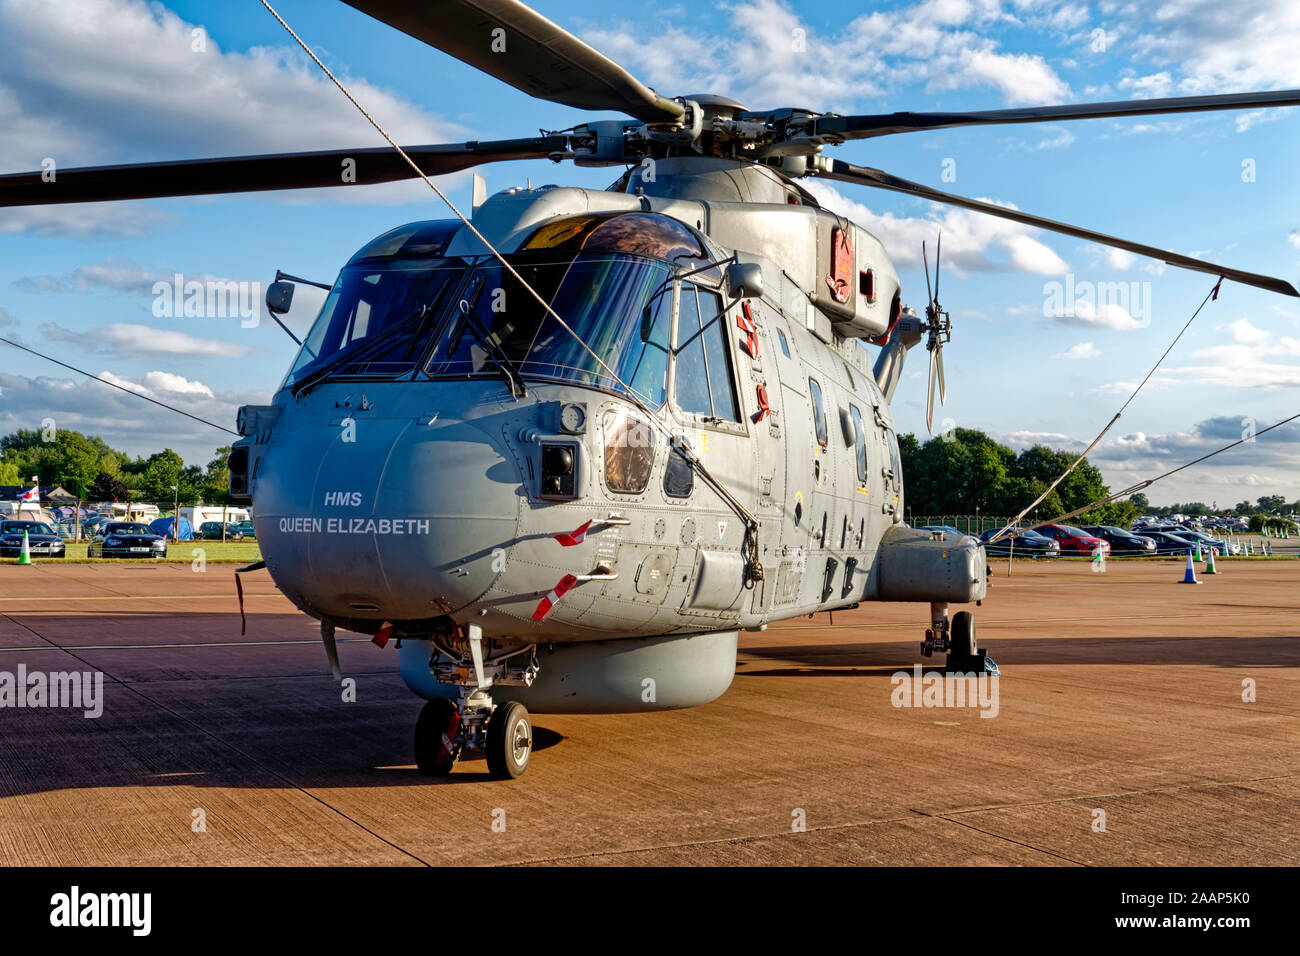 A Royal Navy 814 Naval Air Squadron, AgustaWestland Merlin HM2 Helicopter based at RNAS Culdrose in Cornwall at the RIAT, RAF Fairford, 2019 Stock Photo